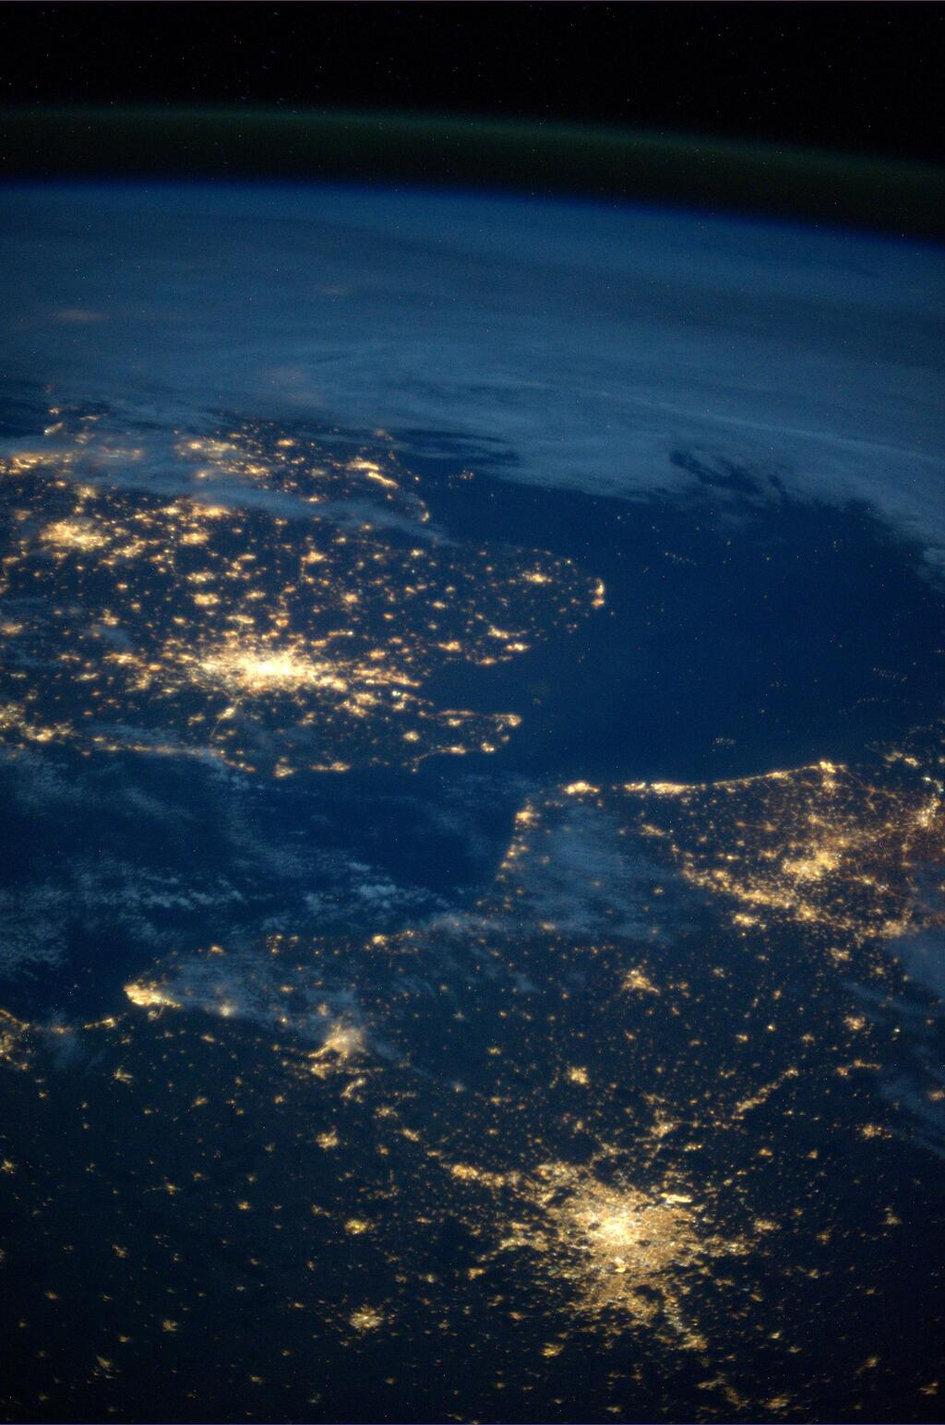 Paris & London photographed from the ISS by Luca Parmitano